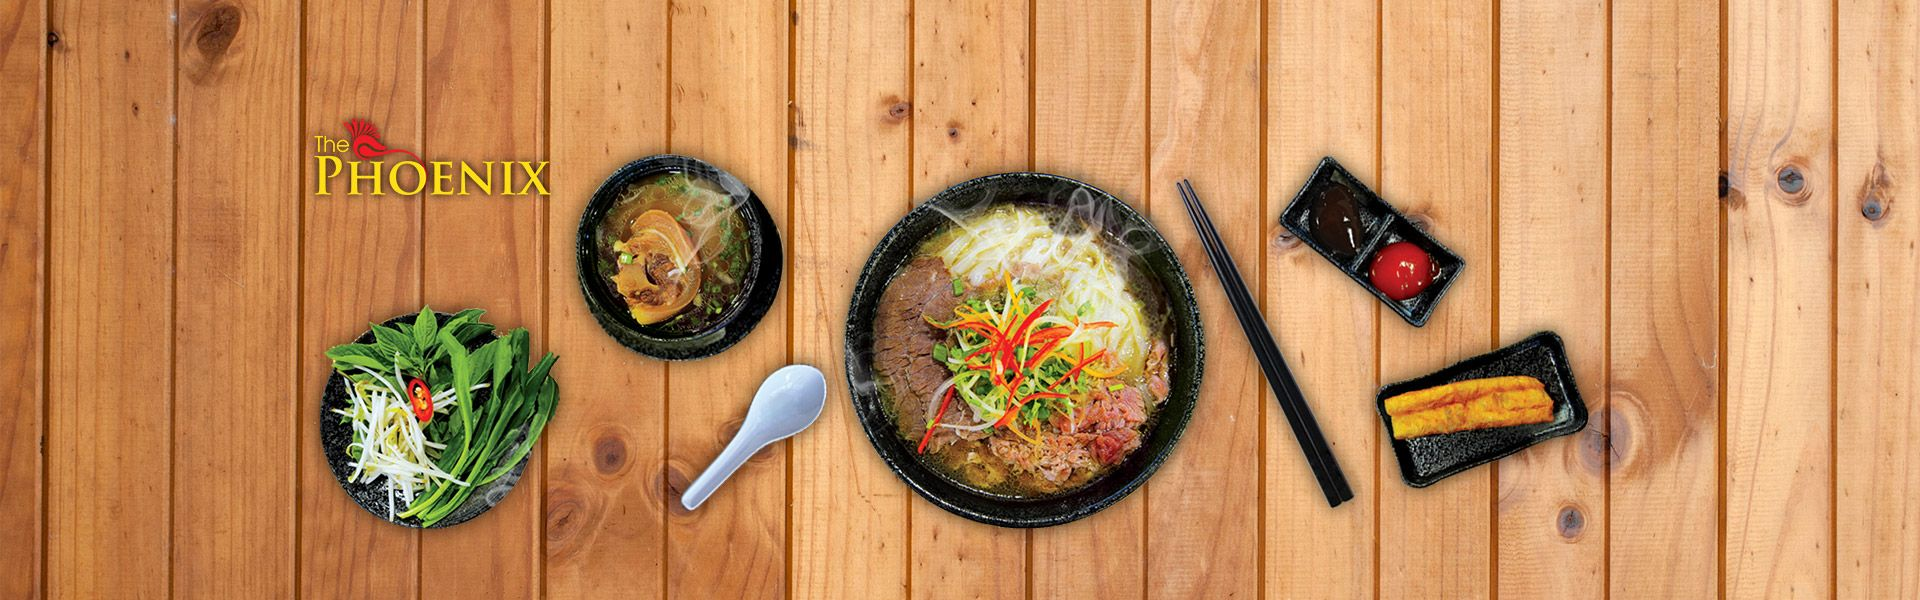 Phoenix-Oxtail-Pho---News-Banner